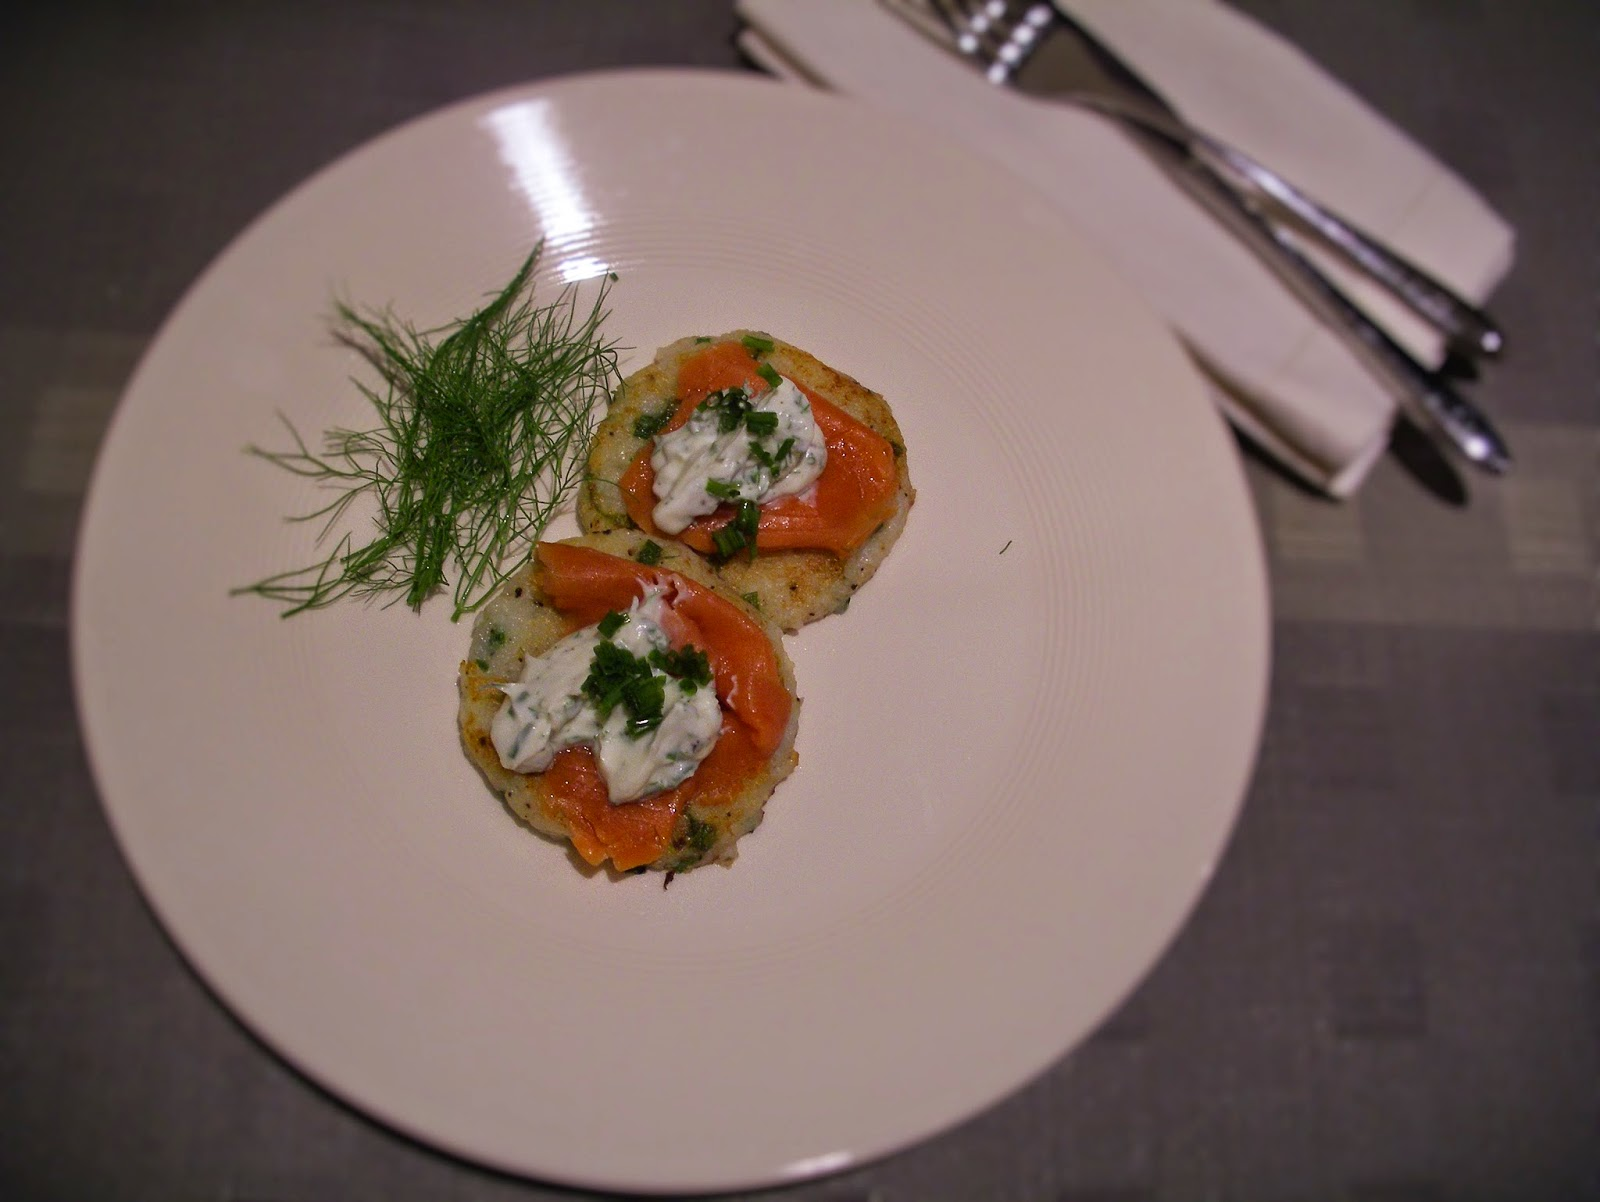 Potato cakes with smoked salmon and herb crème fraîche